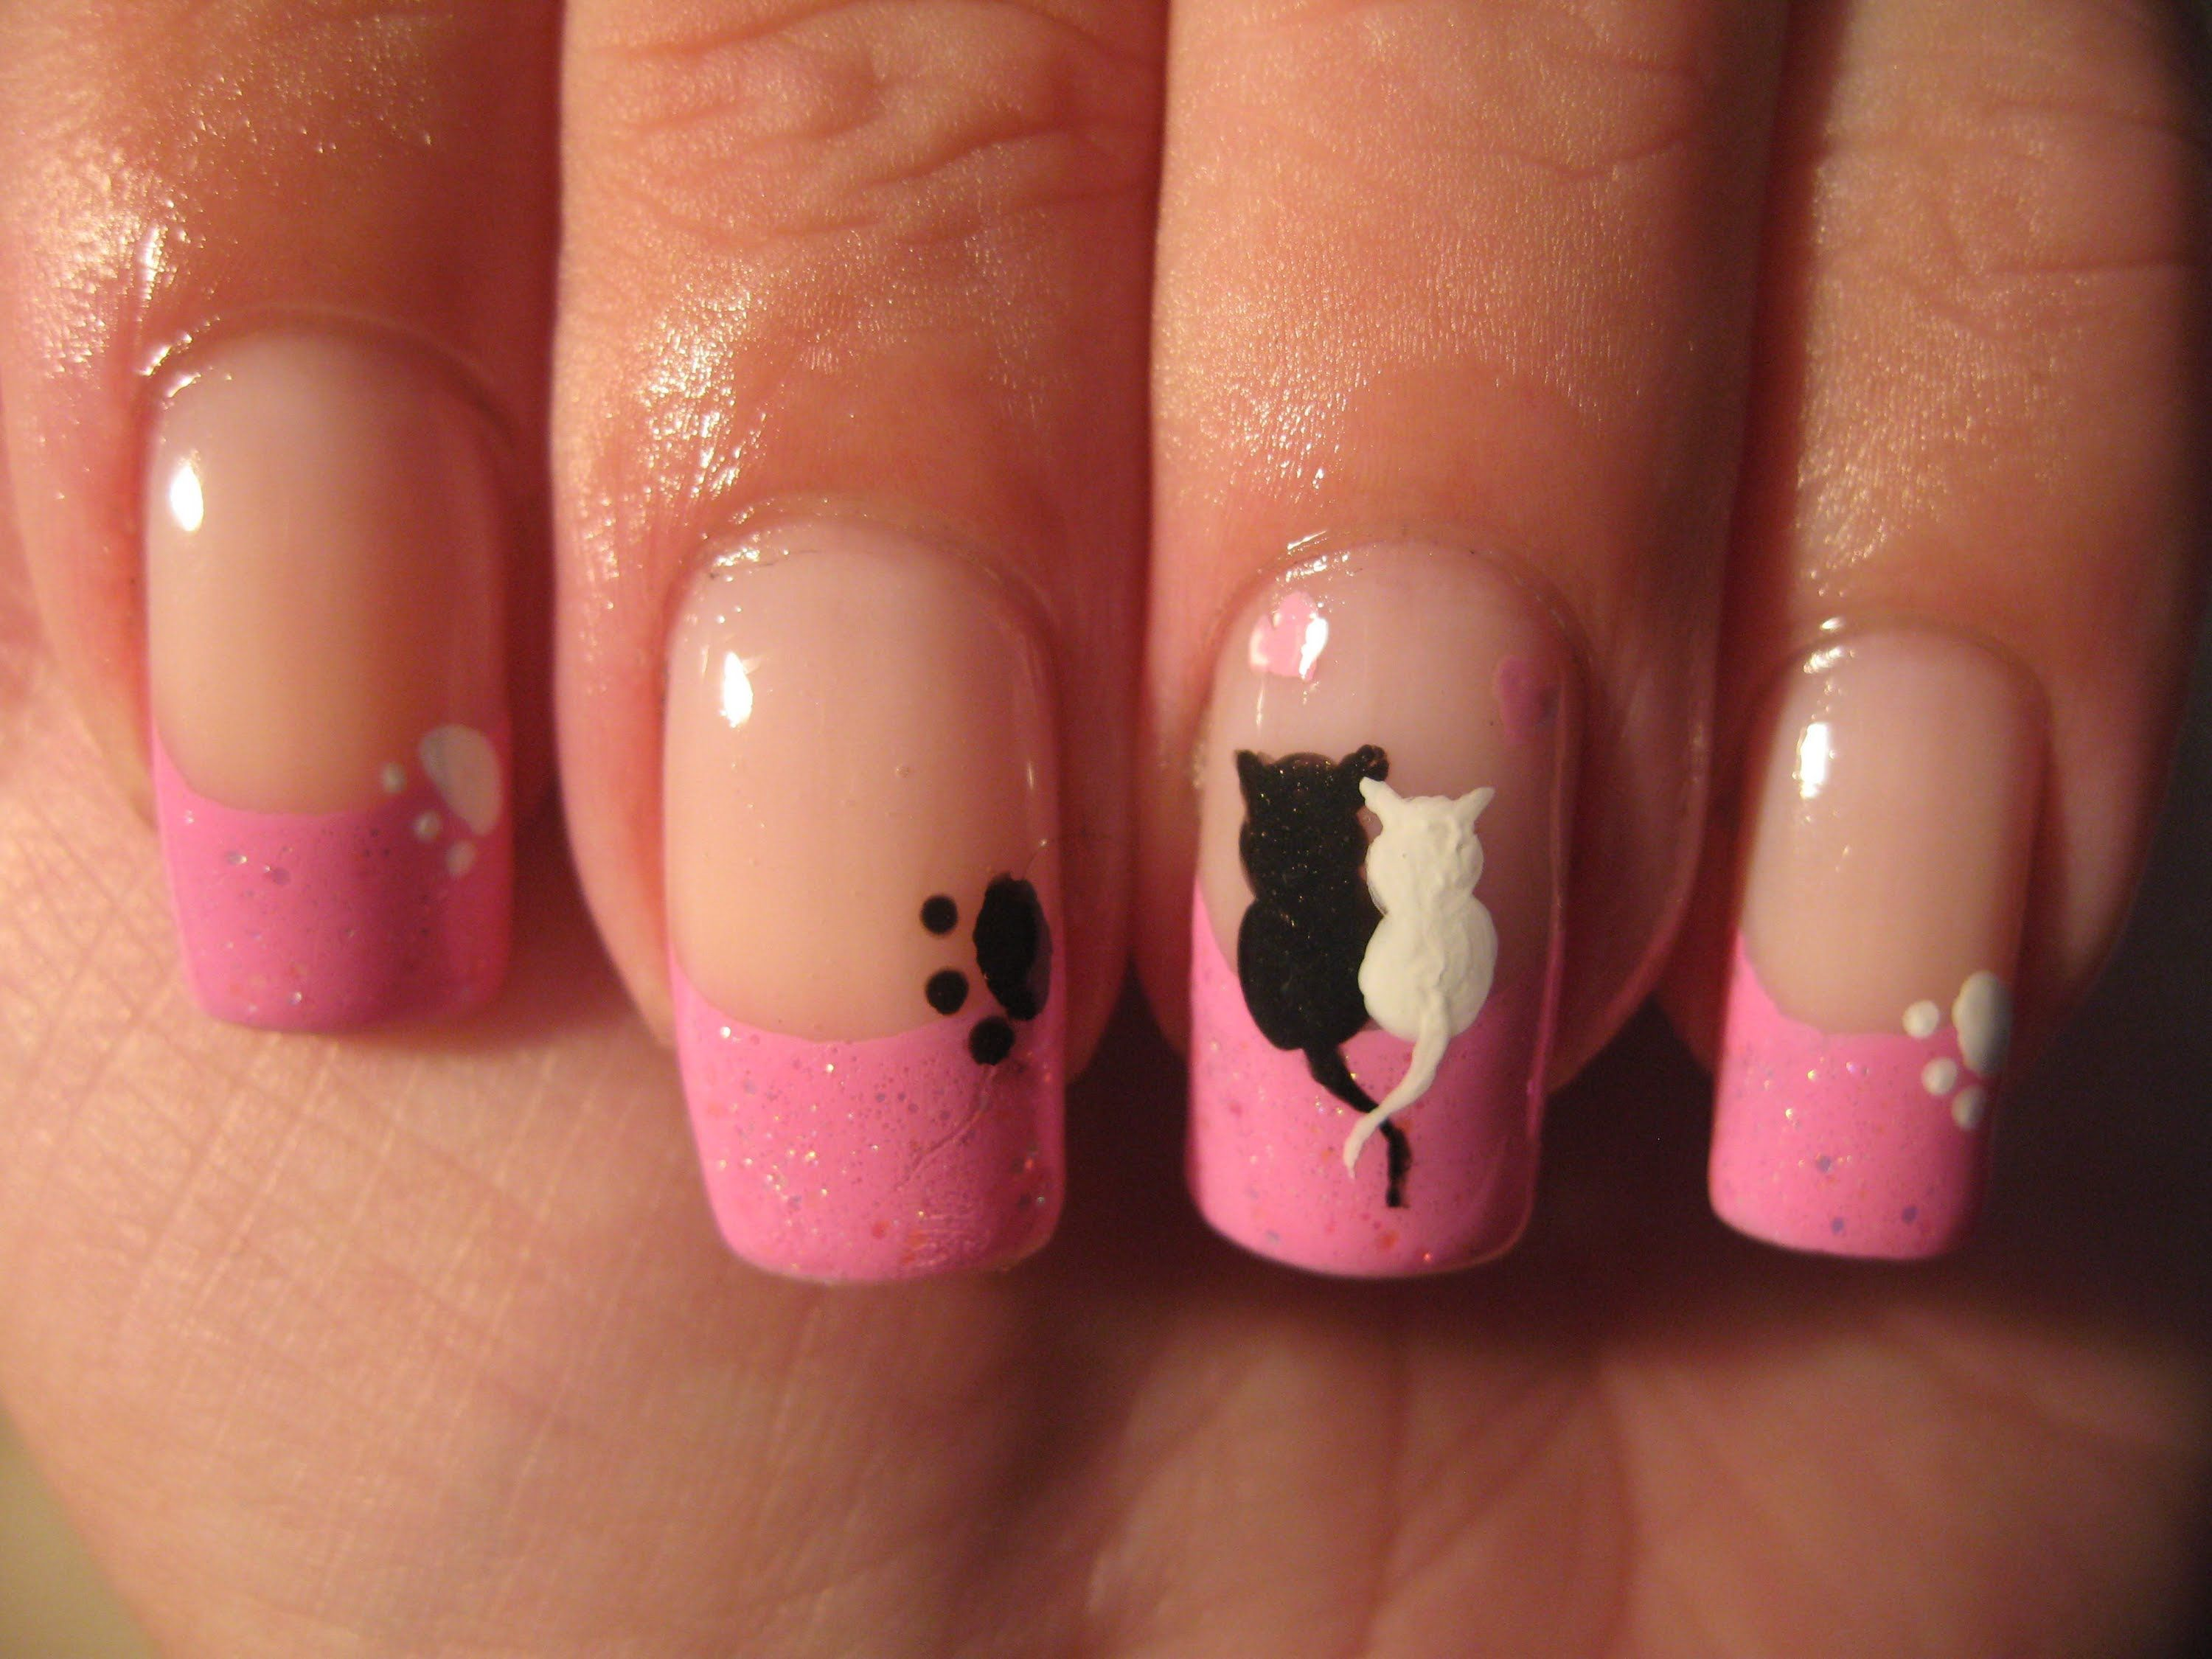 Nail art cute cats love via youtube beauty pinterest cats in love nail art gallery by nails magazine and like omg get some yourself some pawtastic adorable cat apparel solutioingenieria Choice Image